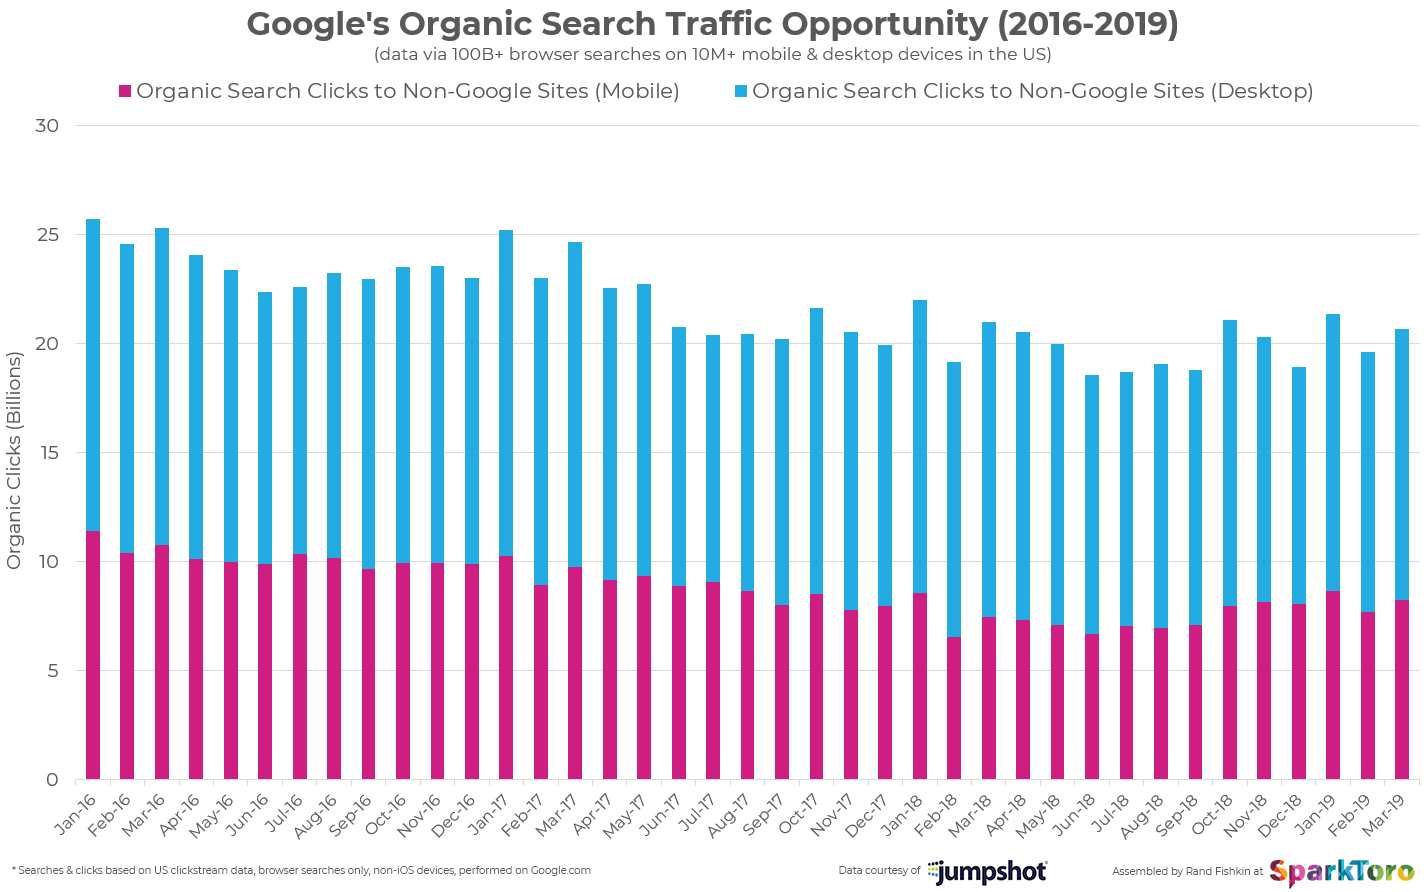 Google's organic search traffic opportunities (2016 - 2019) - Chart